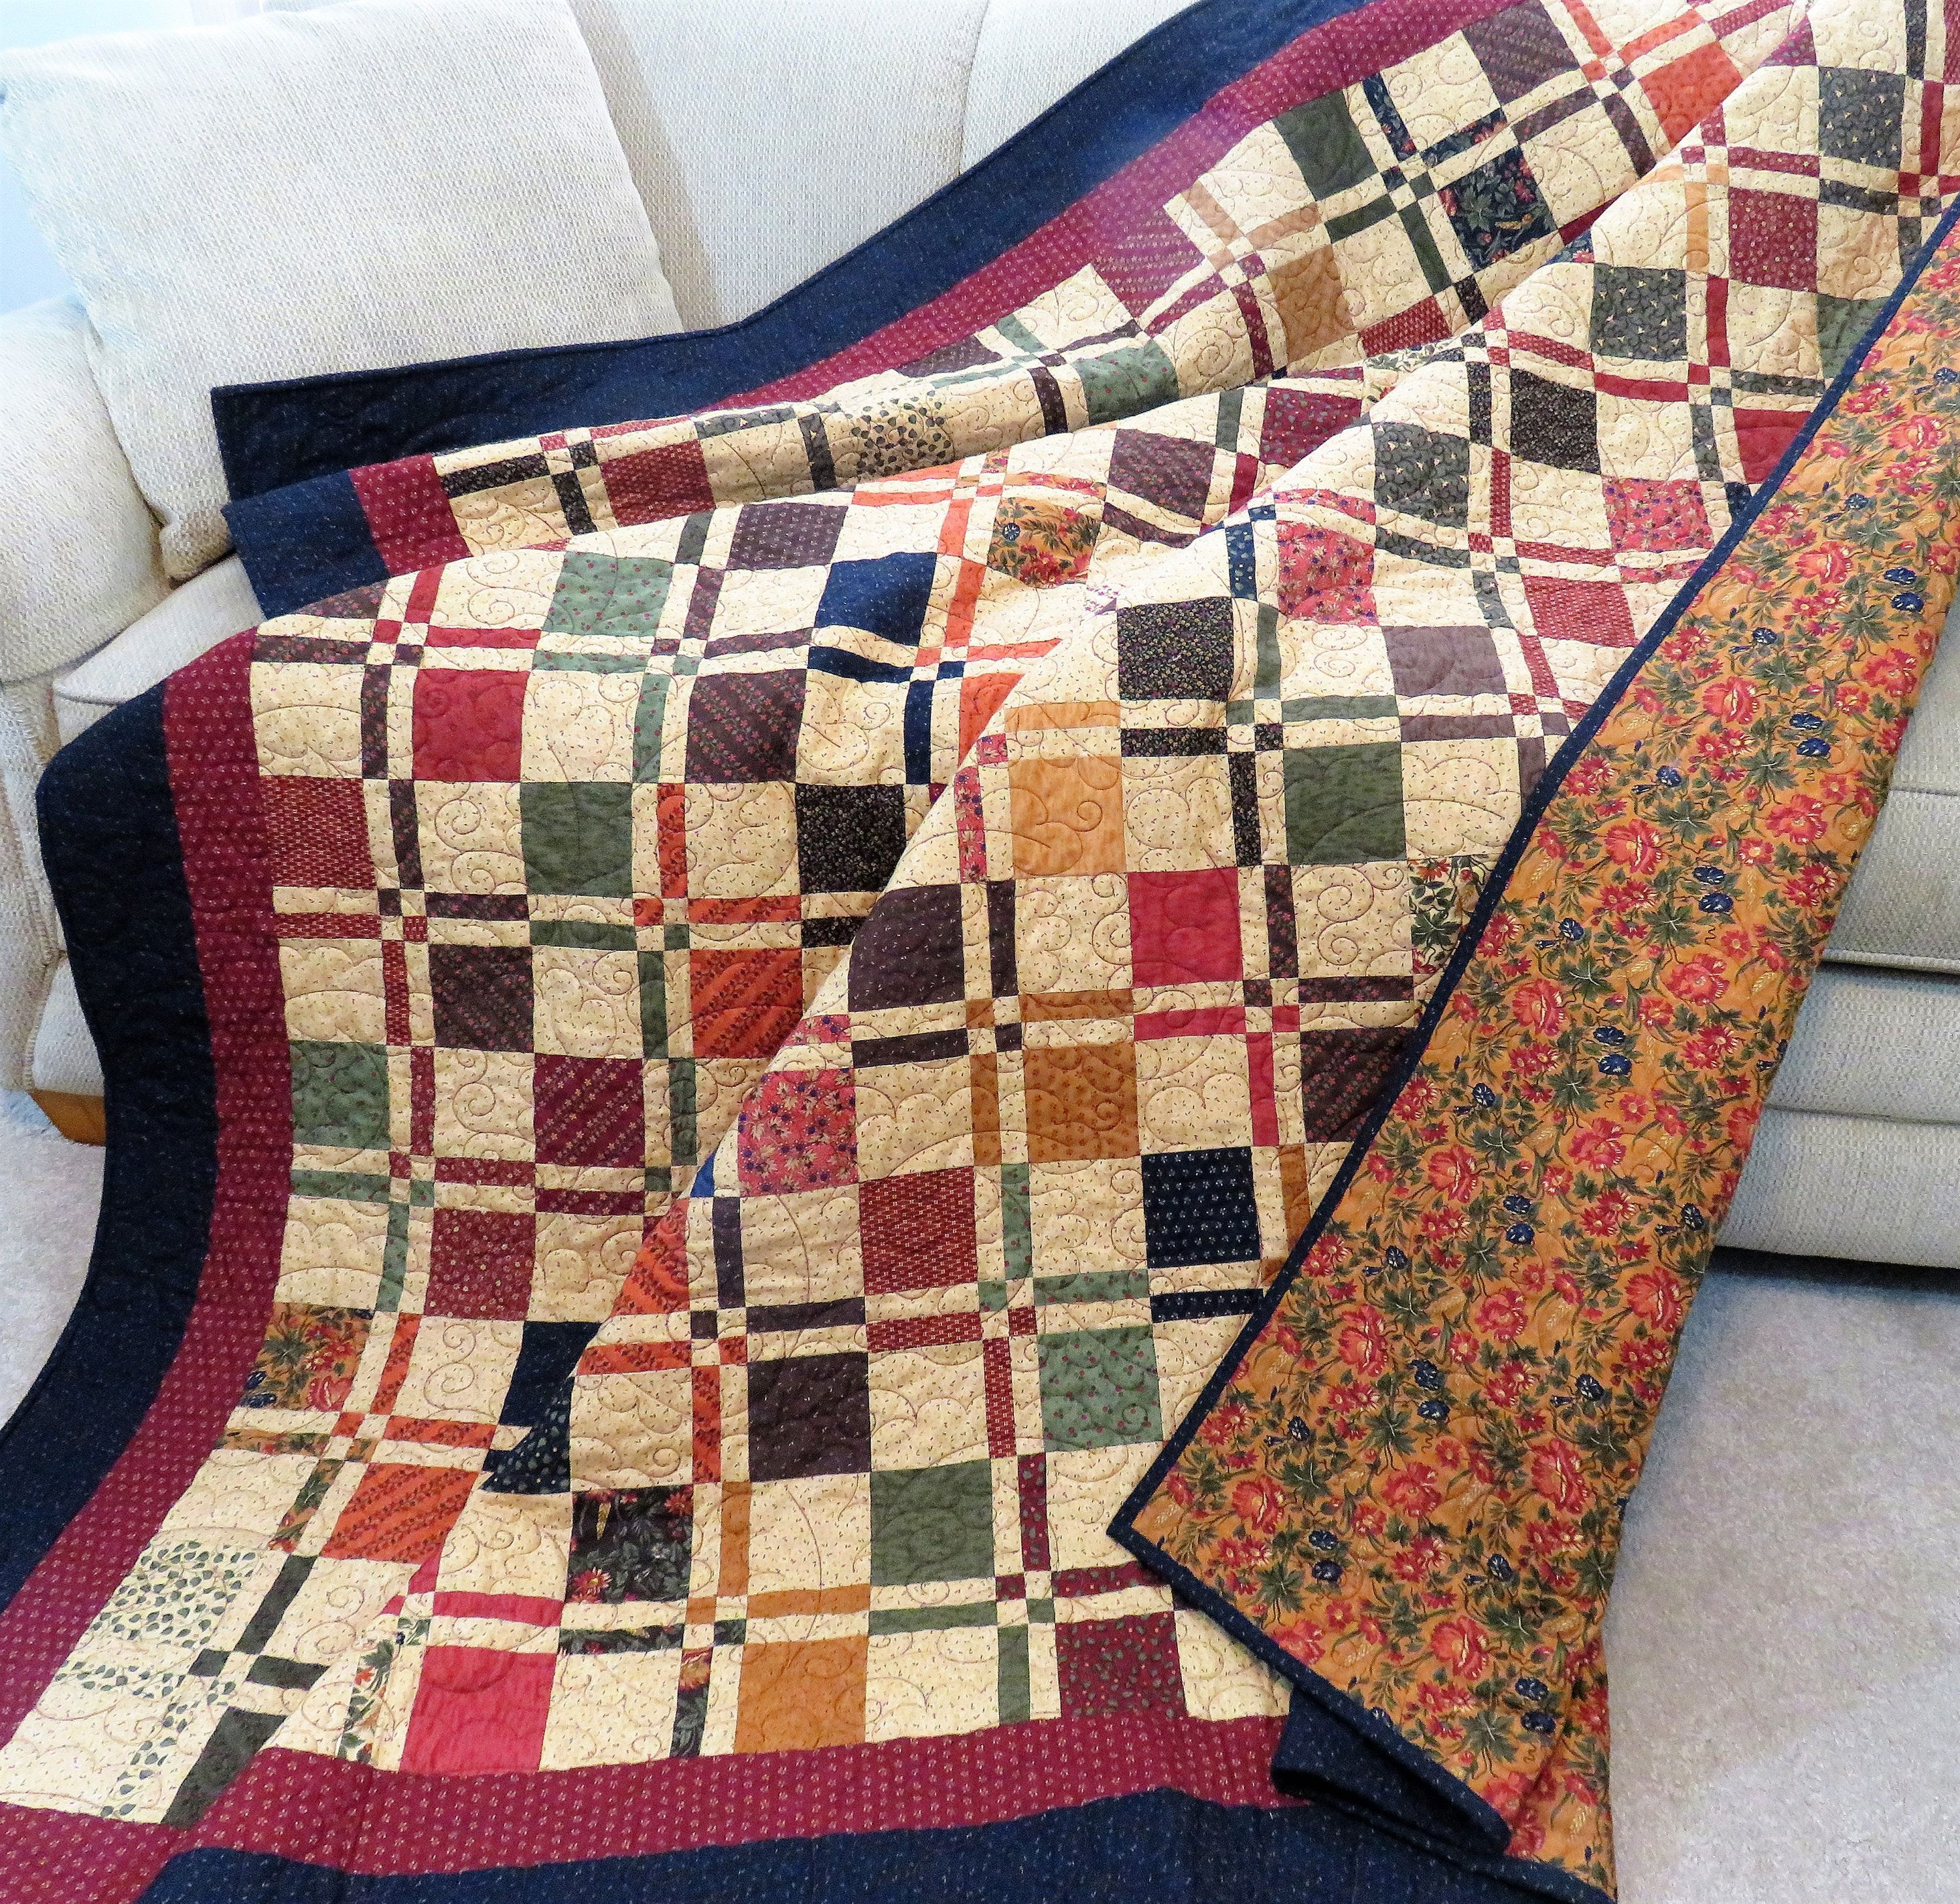 Handmade Quilt For Sale Twin Size Quilt Full Size Coverlet Etsy Handmade Quilts For Sale Twin Quilt Size Quilts For Sale